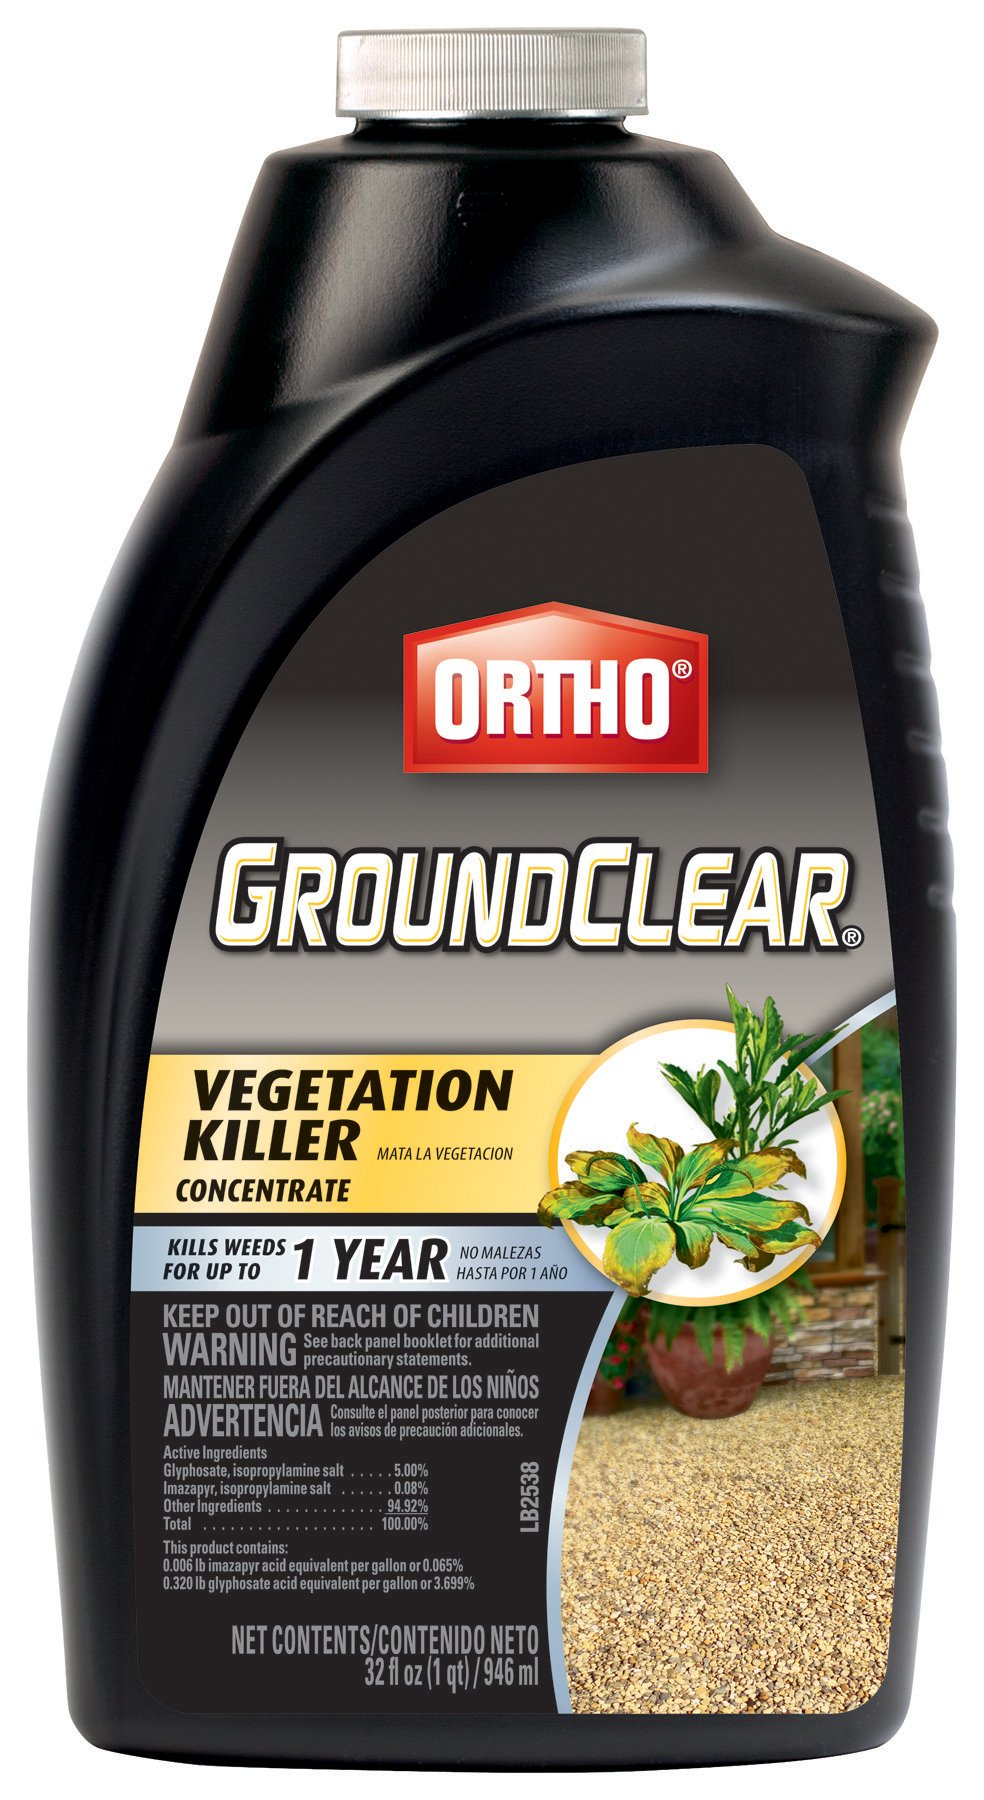 Ortho GroundClear Vegetation Killer Concentrate, 32-Ounce by Ortho